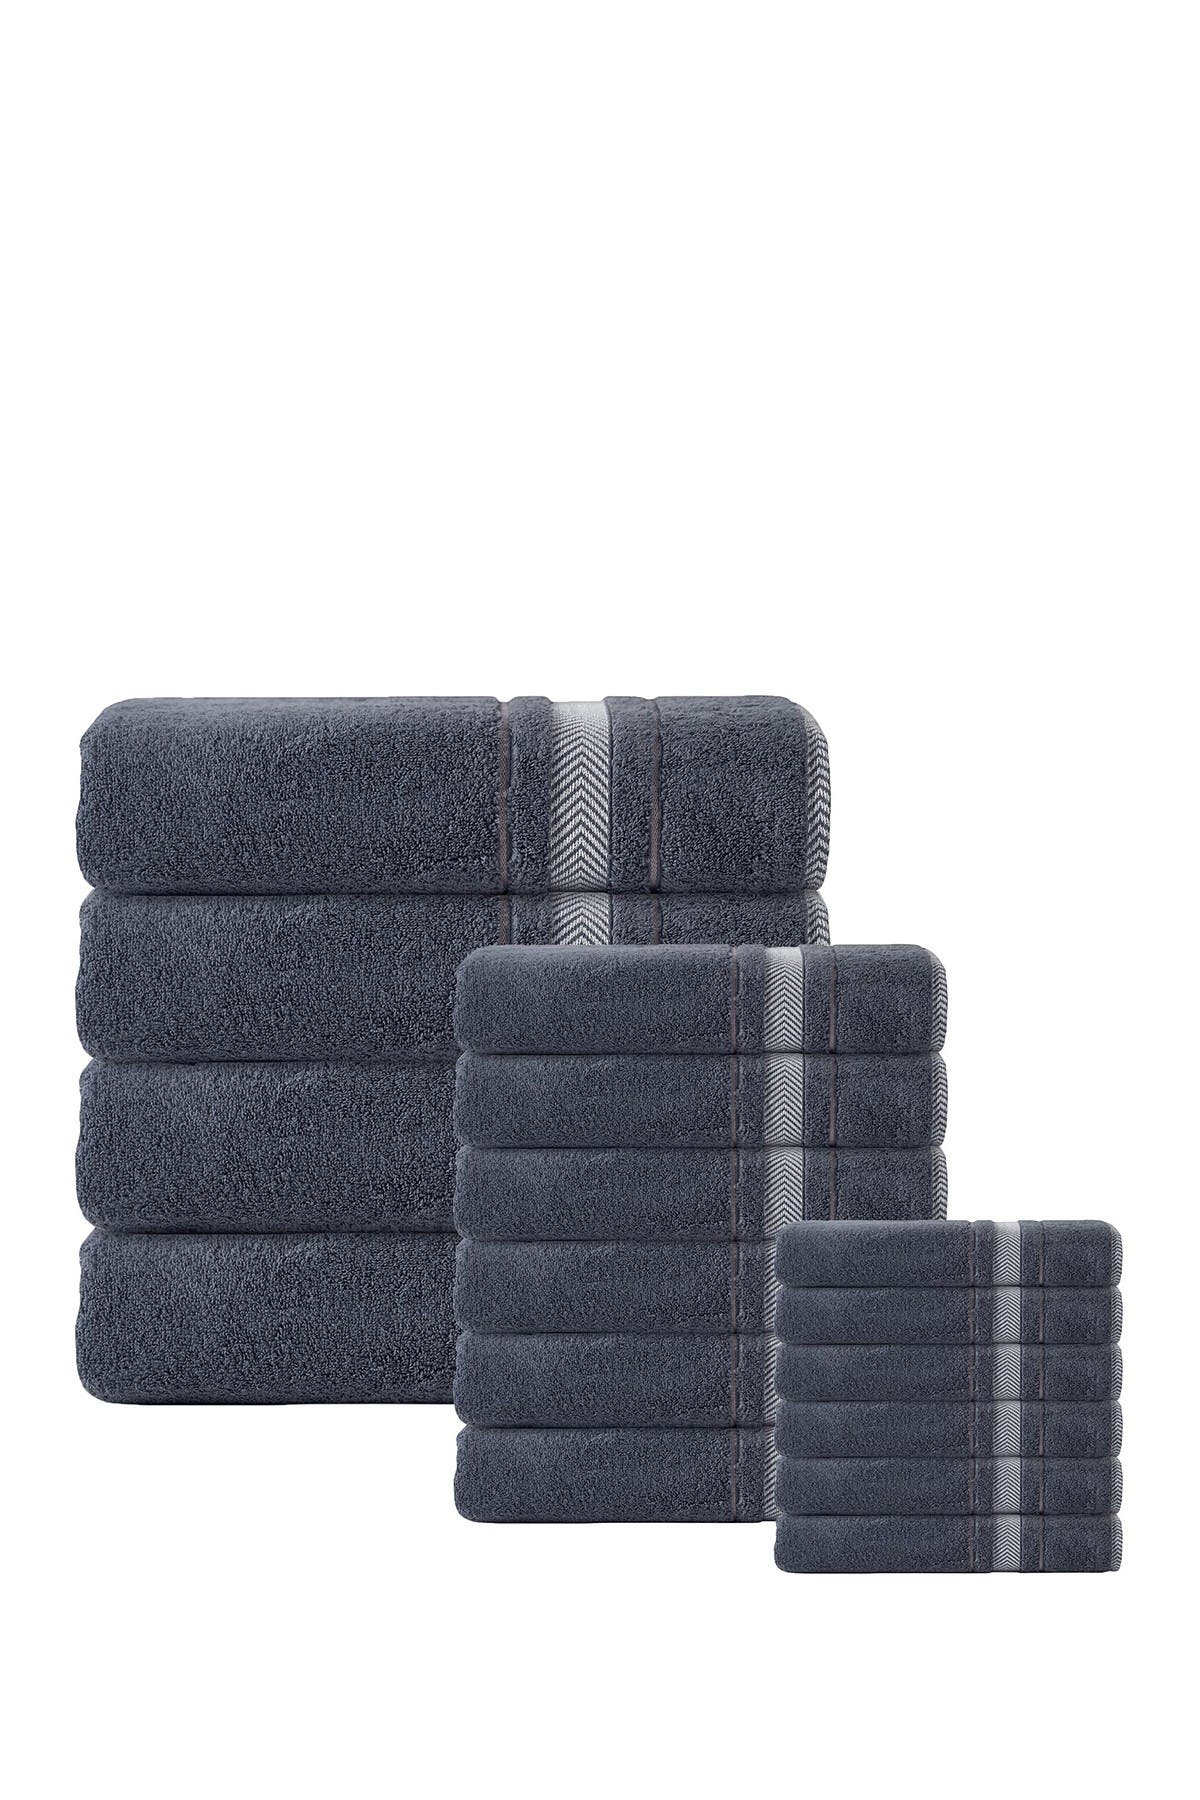 Image of ENCHANTE HOME Enchasoft Turkish Cotton 16-Piece Towel Set